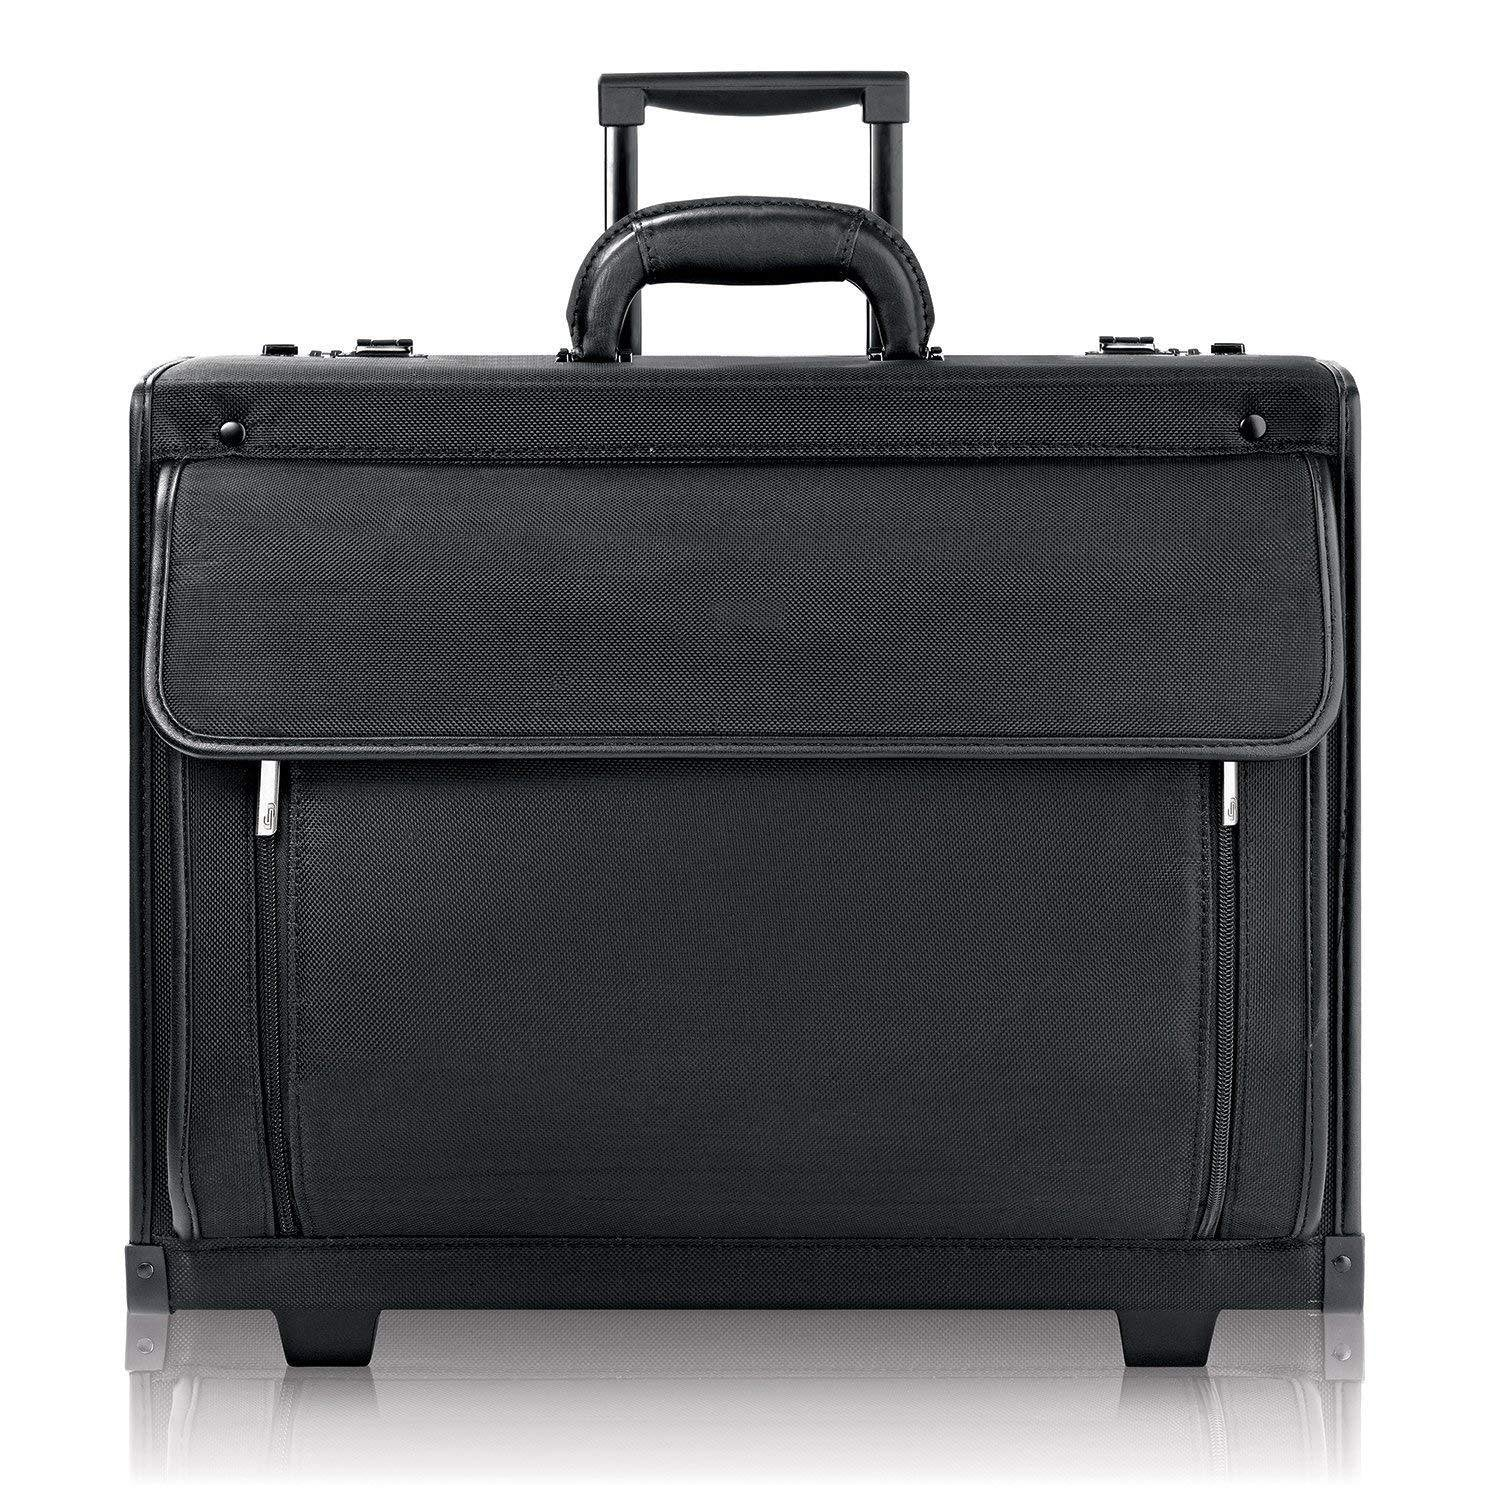 15.6 Inch Laptop Case With Dual Combination Locks